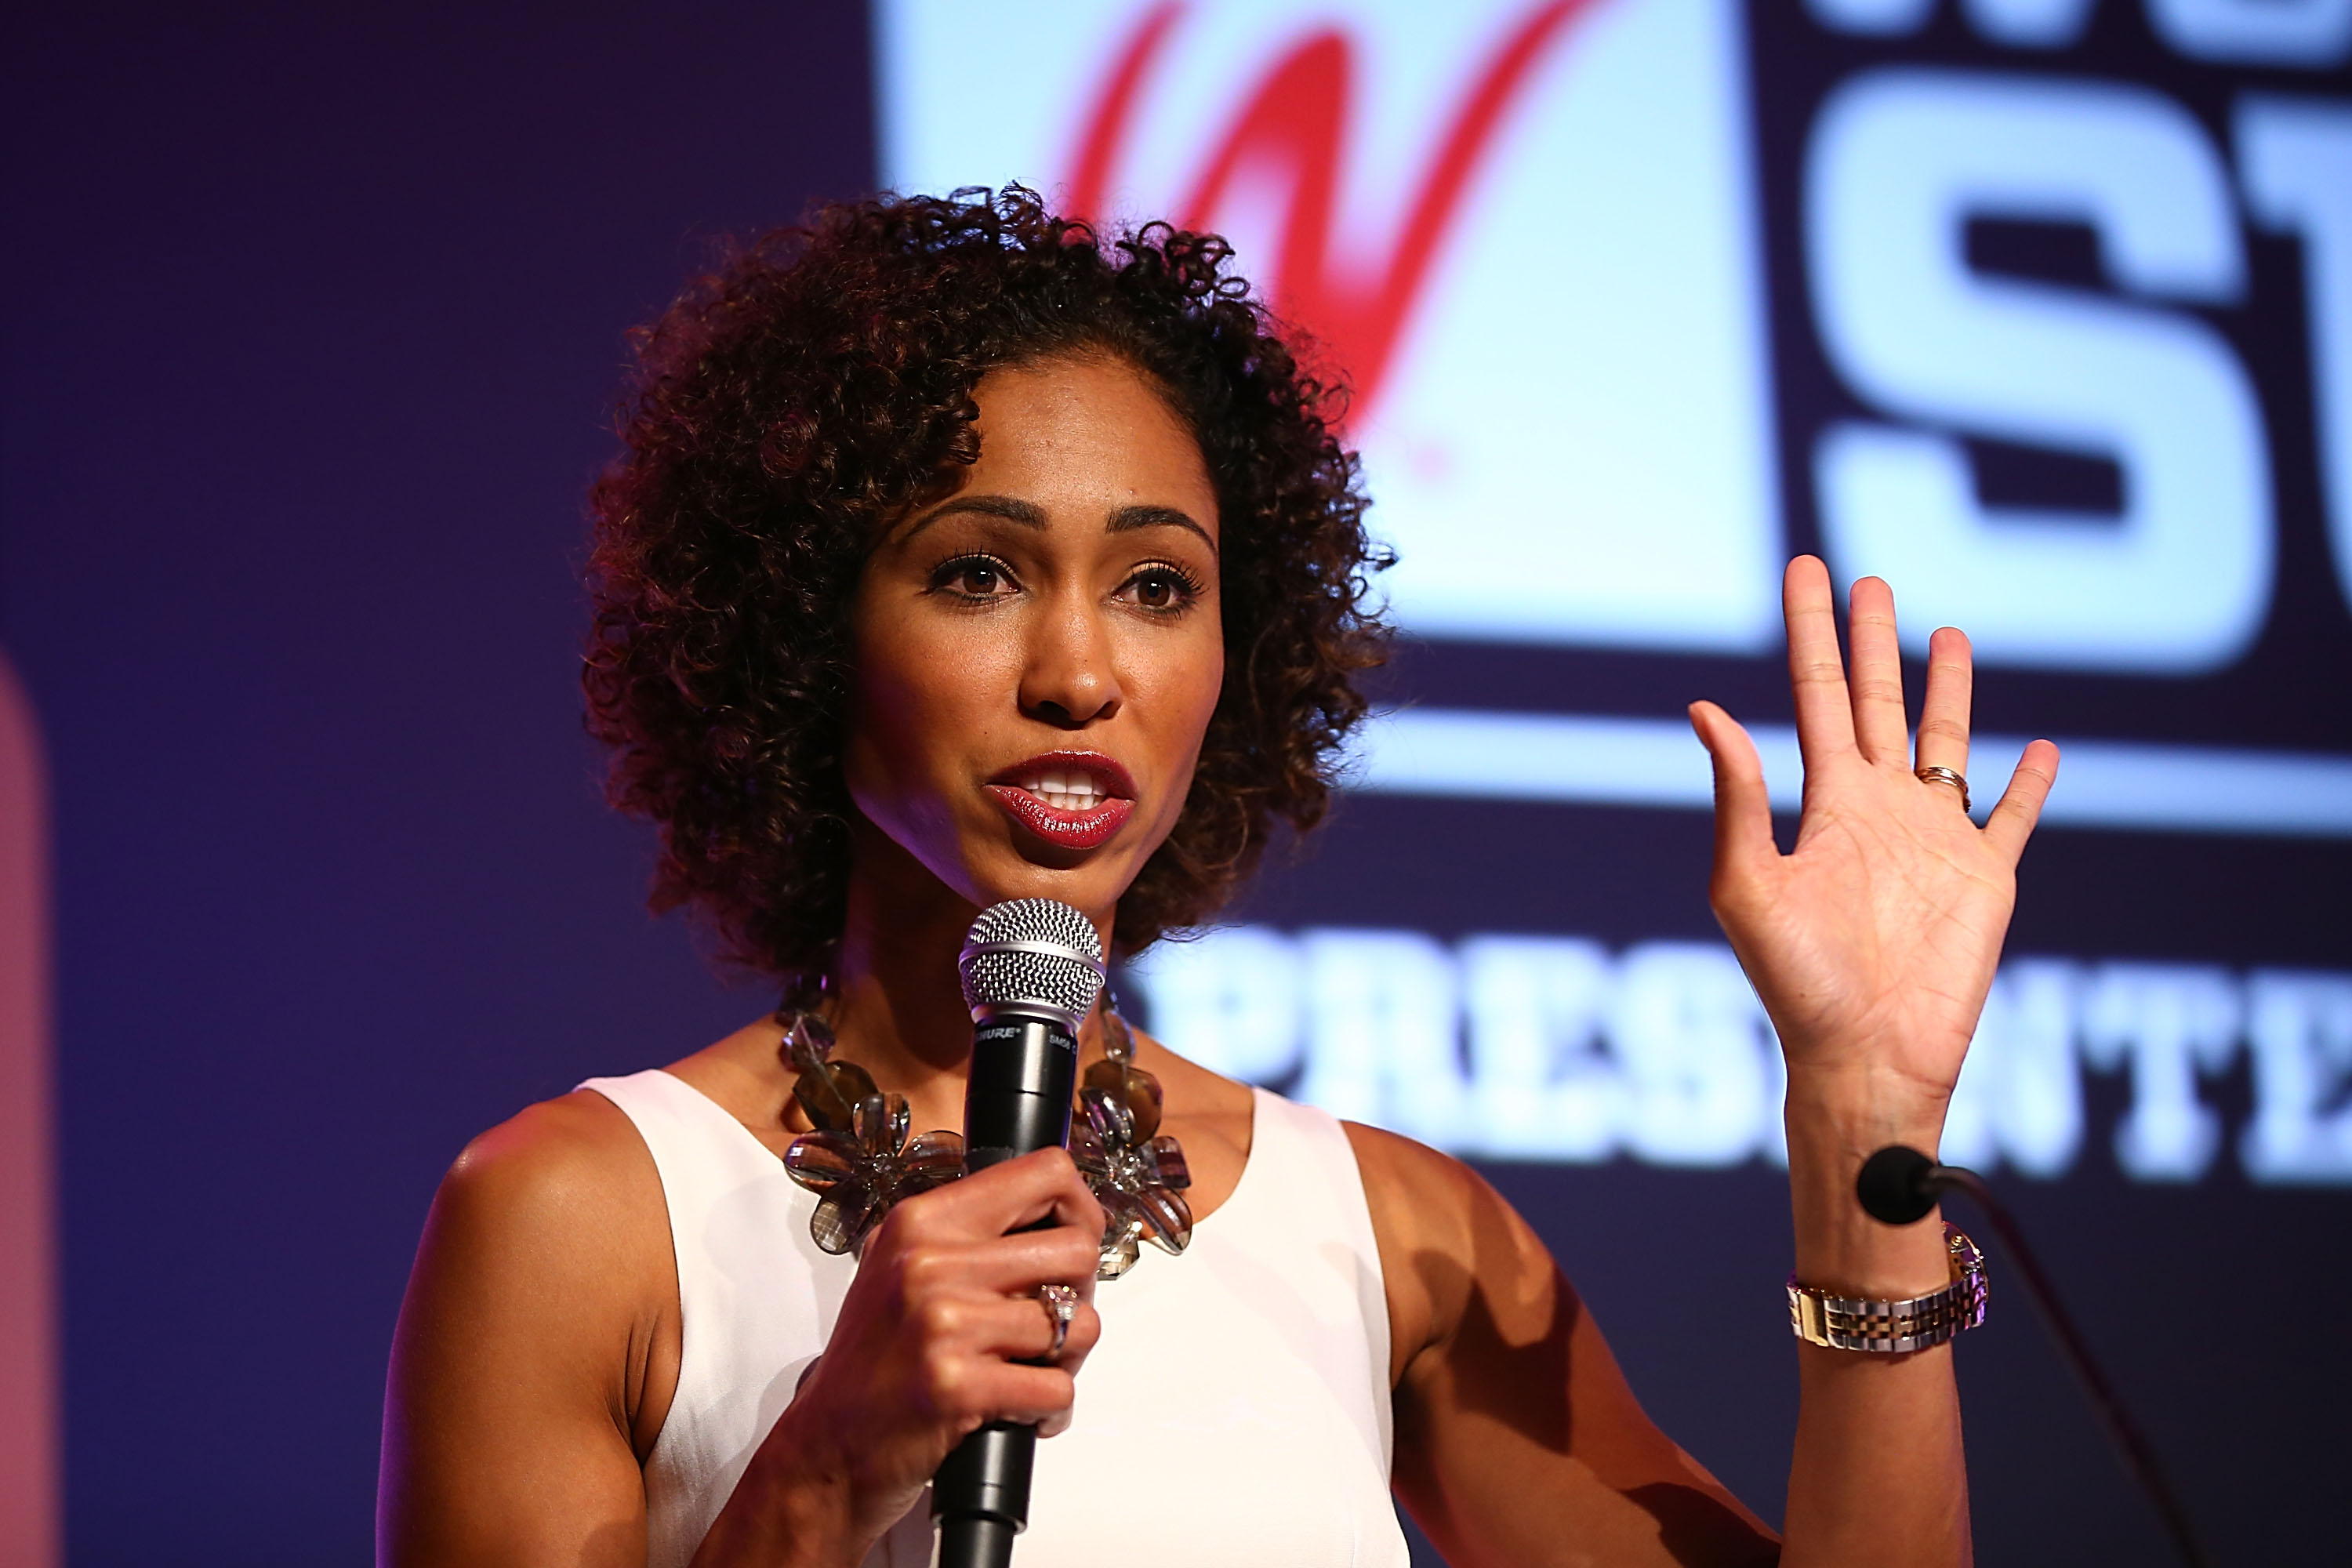 ESPN SportsCenter anchor Sage Steele